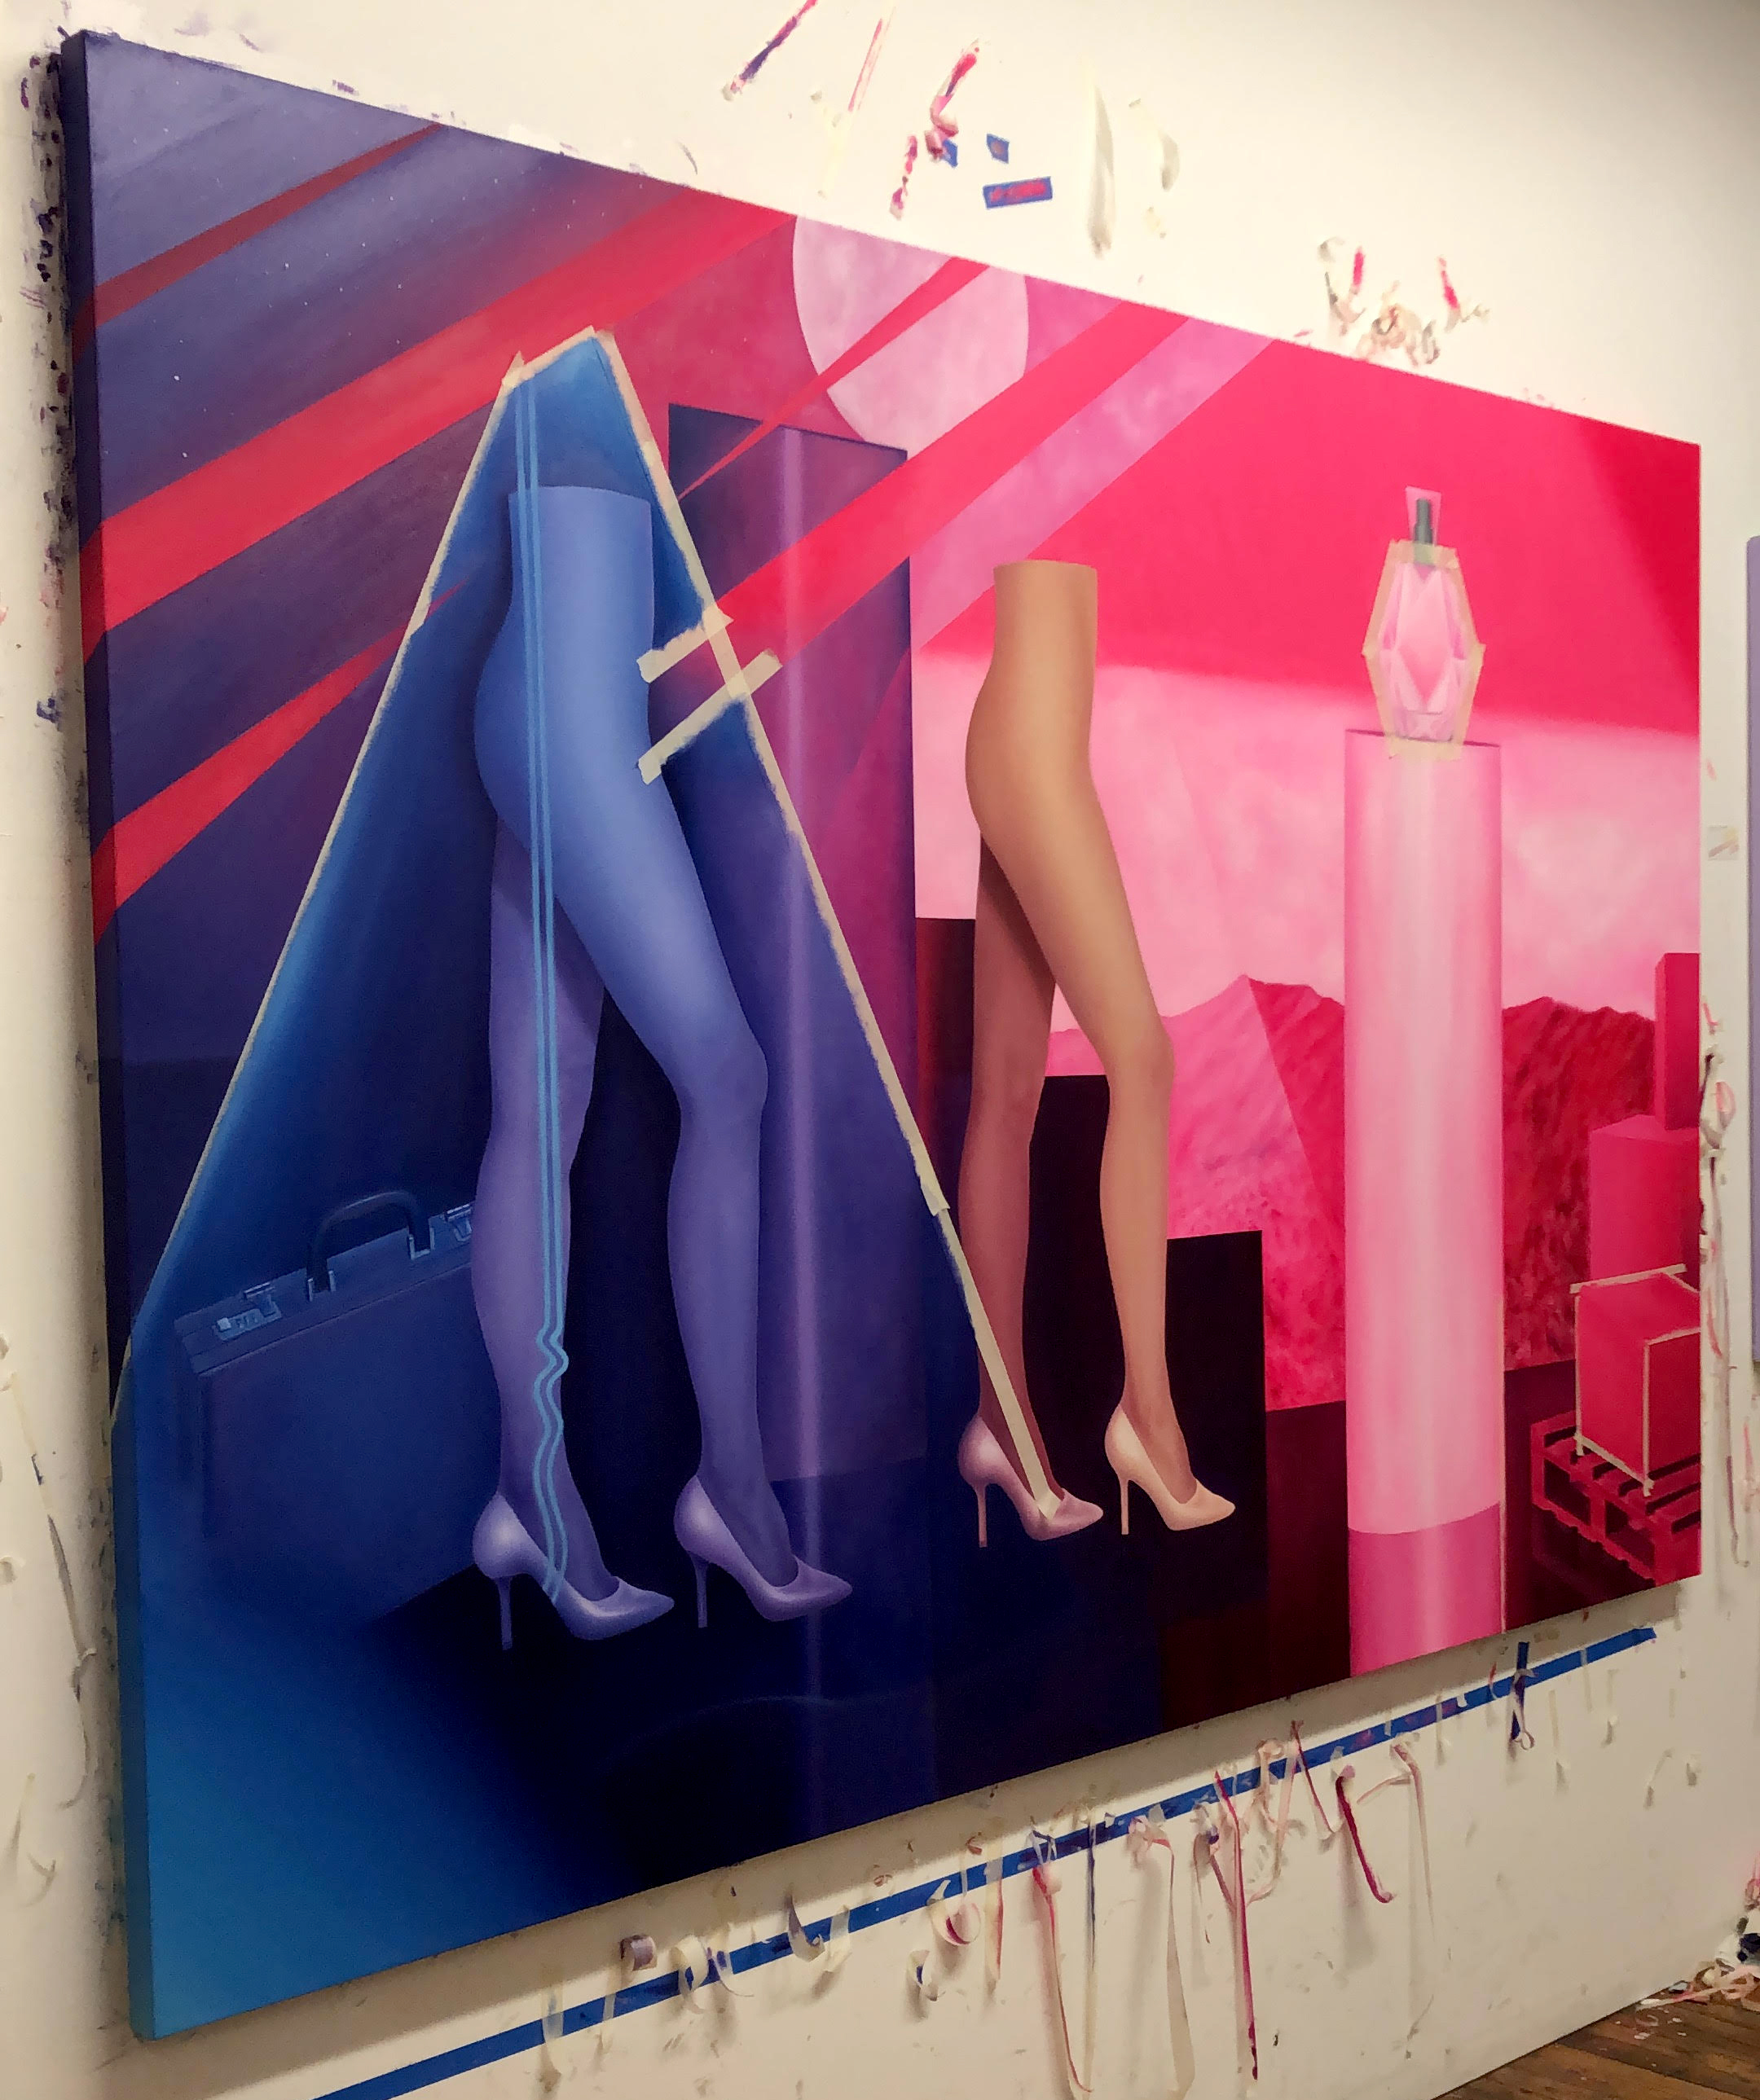 Mirage(In Progress) - 63 x 96 in. Oil on Stretched Canvas, 2018–2019Artspace Write-Up